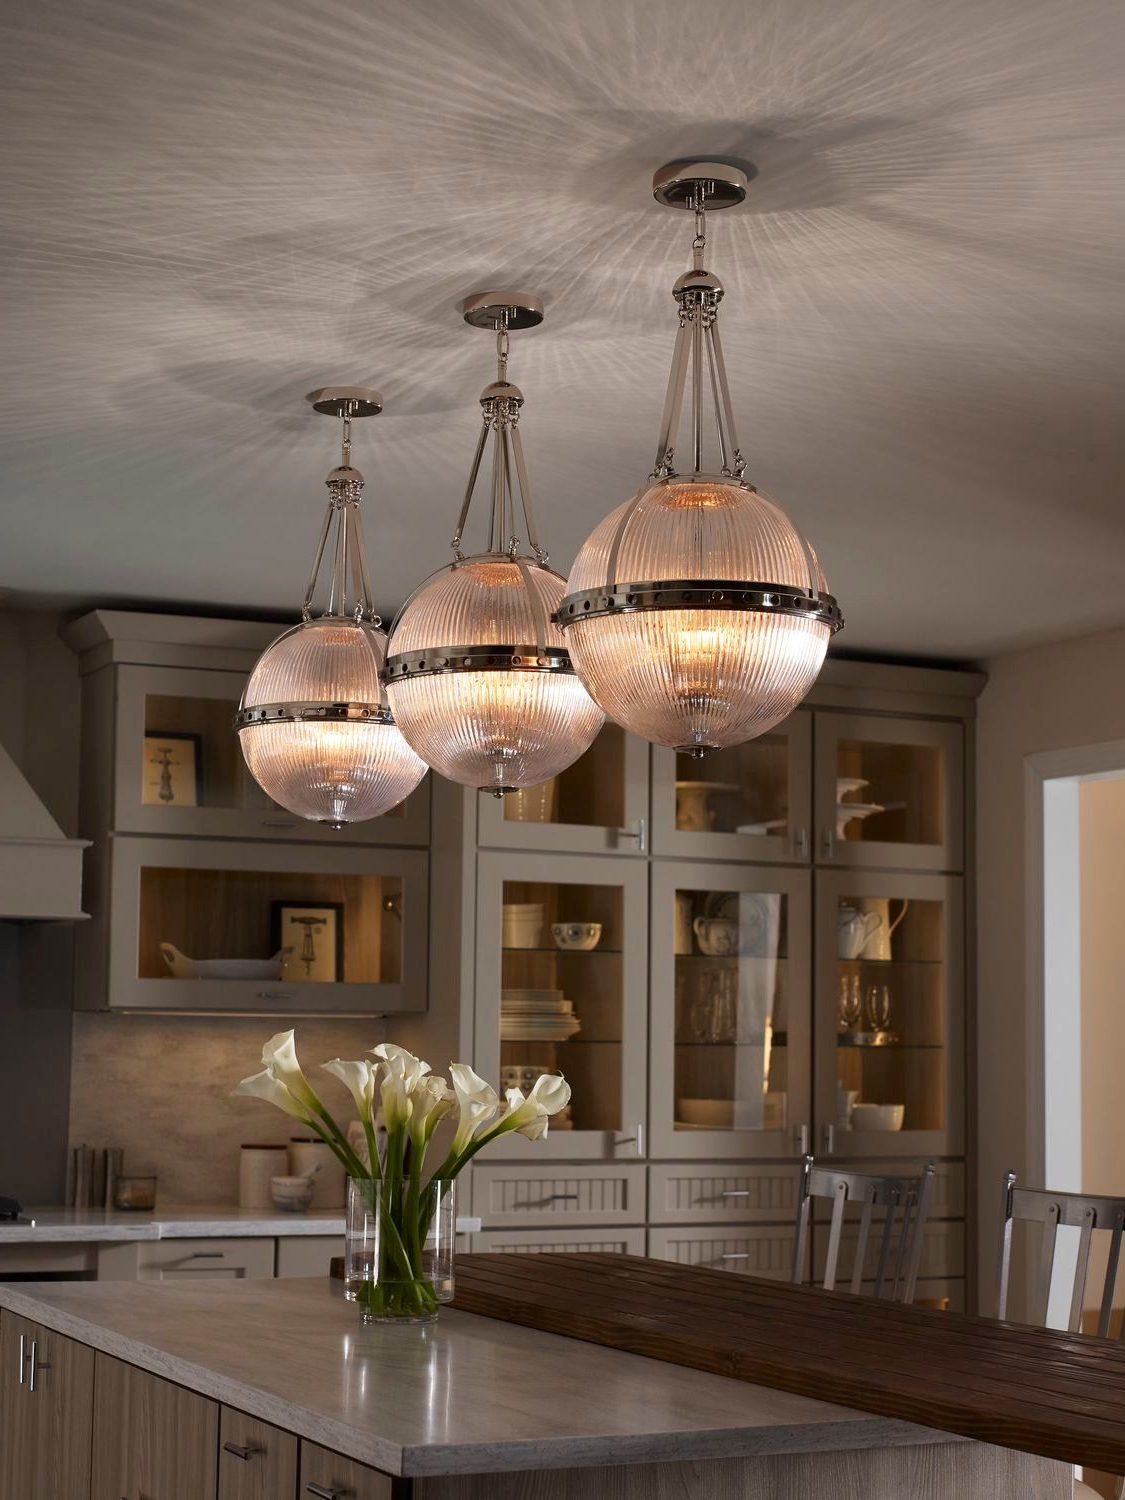 2020 La Barge 3 Light Globe Chandeliers Inside Redefine The Style Of Your Room With Distinctive Orb Shaped (View 23 of 25)